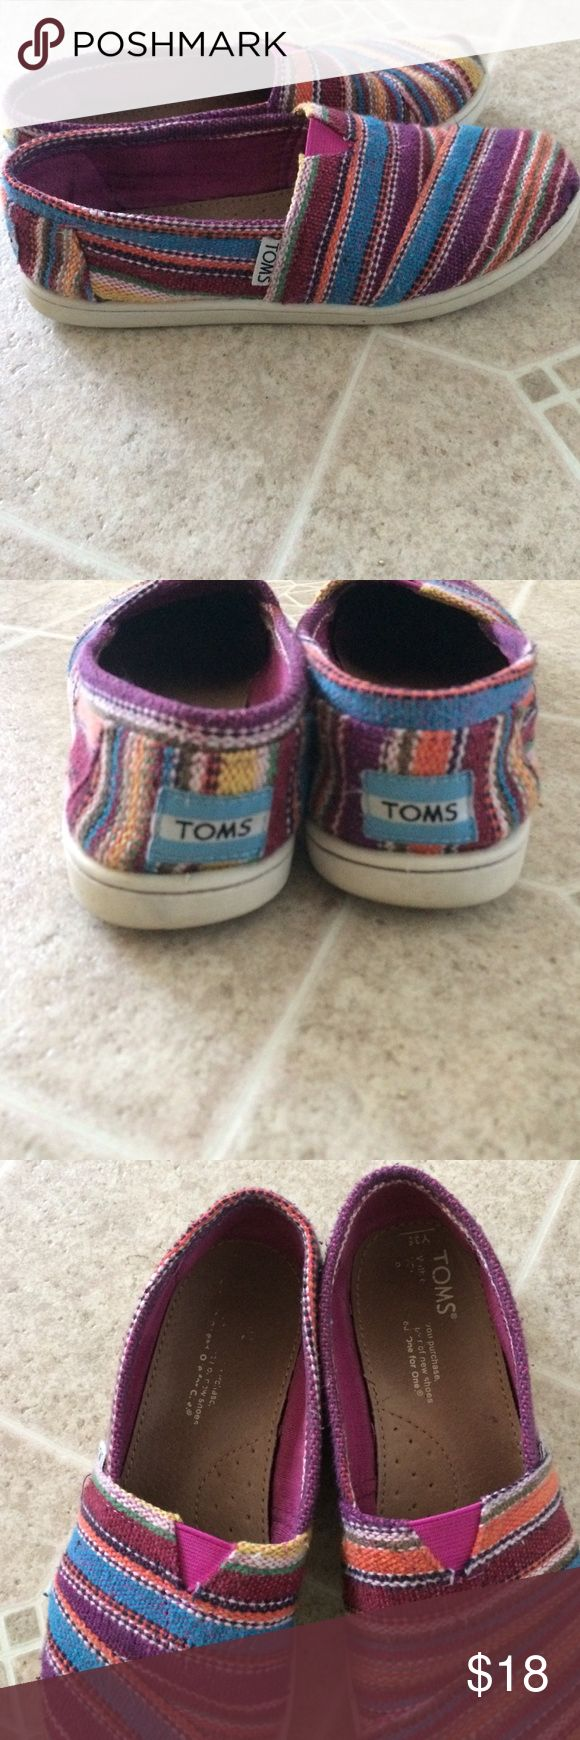 Multi colored GUC kids toms Kids size 3.5 multi colored toms TOMS Shoes Moccasins